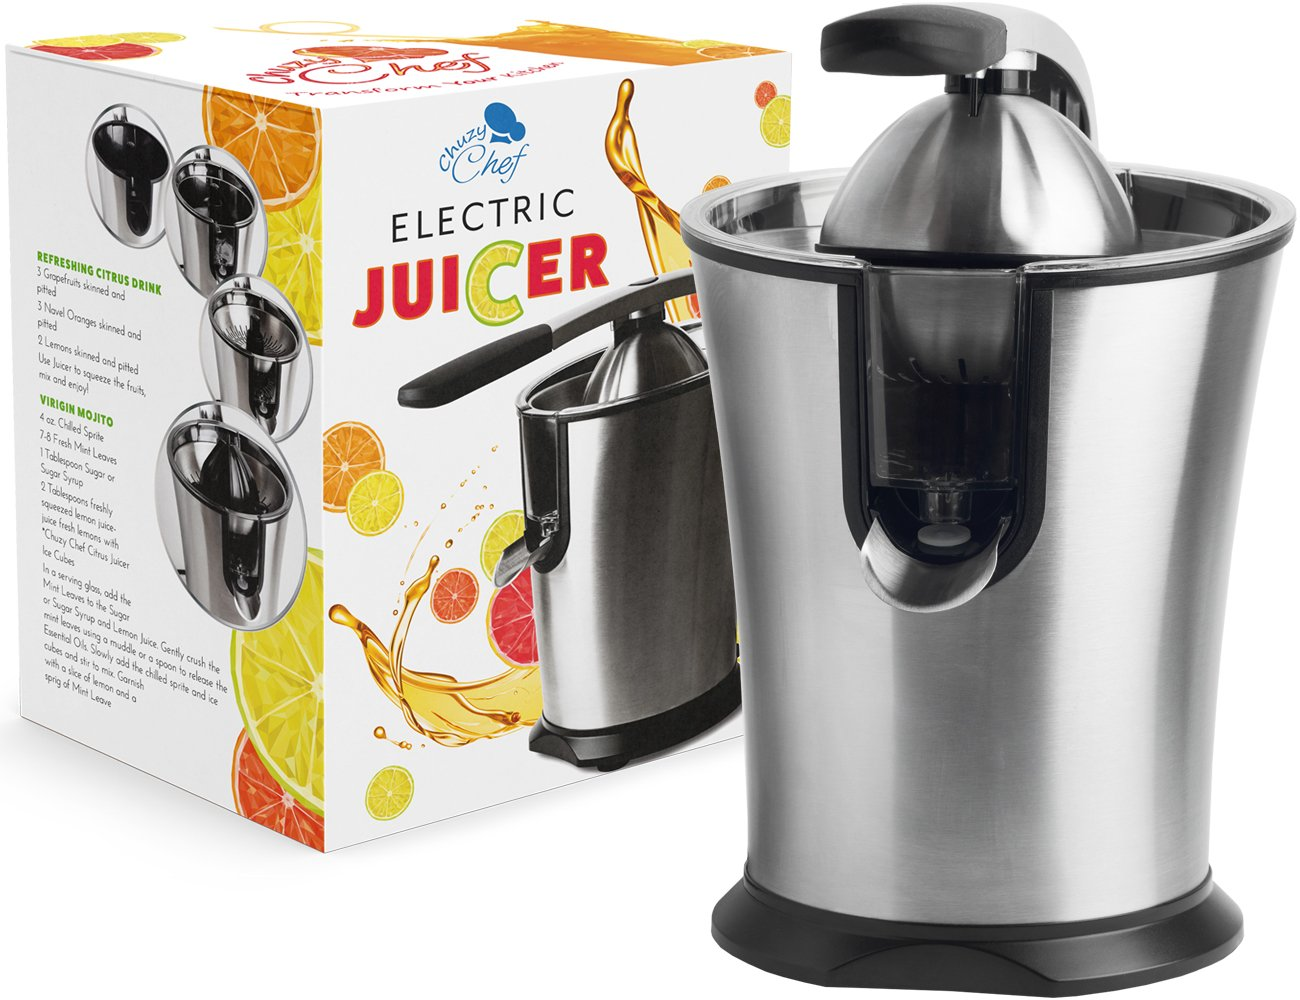 Electric Citrus Juicer Stainless Steel - Compact Lemon, Lime or Orange Squeezer Juice Maker Extractor Machine Witch Anti-drip Citrus Press & Extra Quiet 160 Watt Motor For Making Perfect Citrus Juices